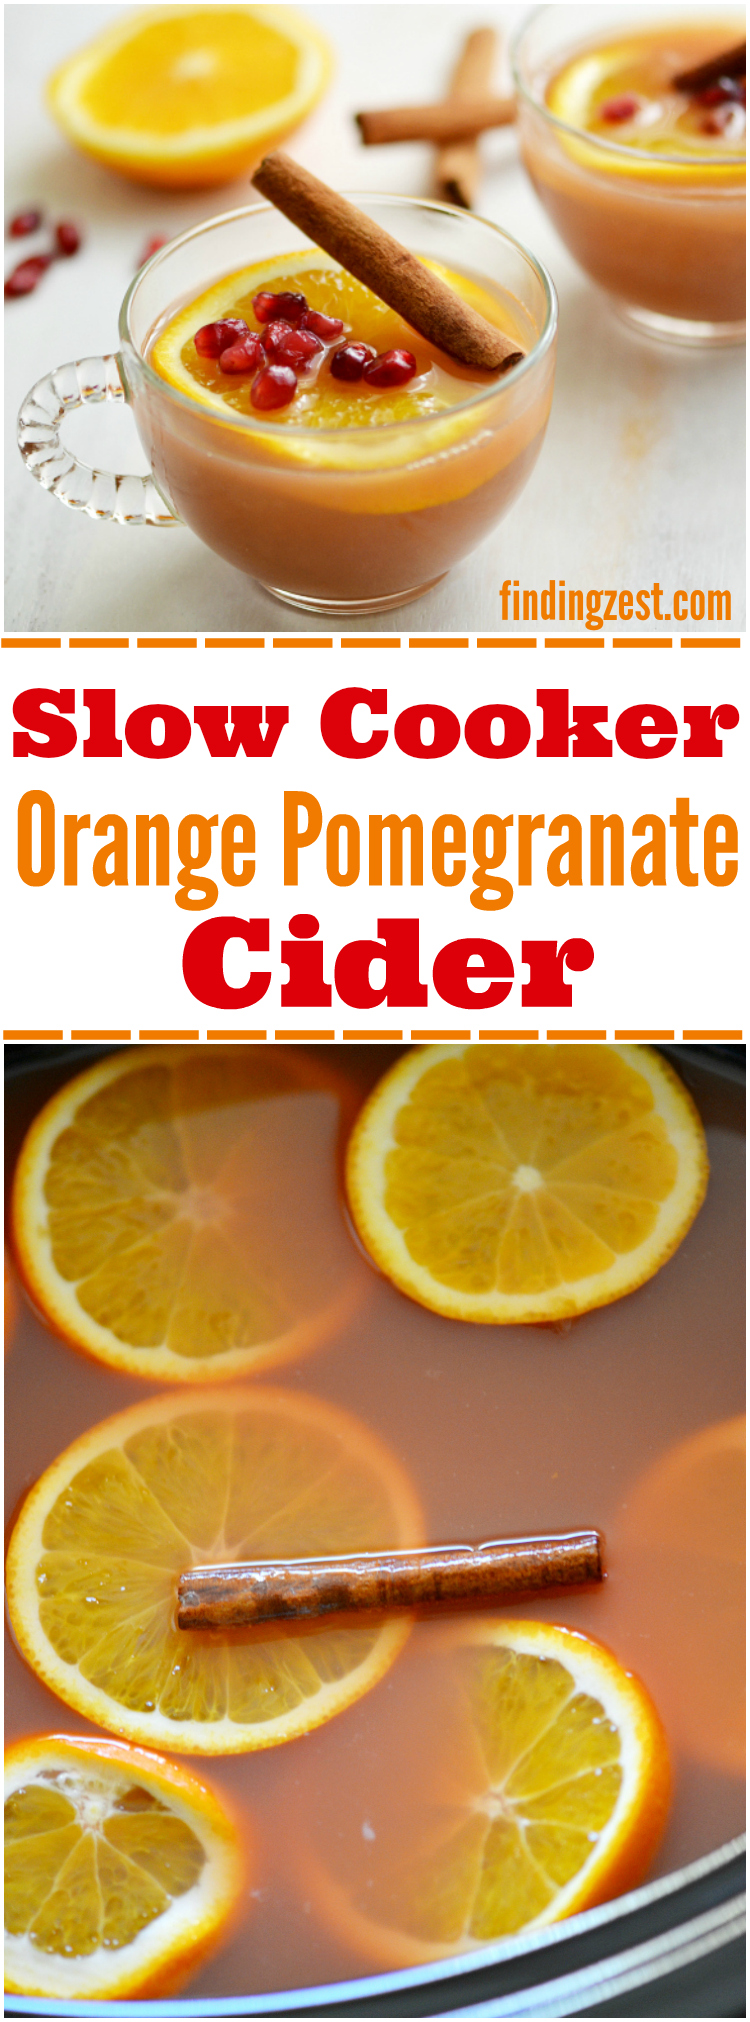 This Slow Cooker Orange Pomegranate Cider is a perfect holiday drink to serve guests and will leave your house smelling amazing. Offer a spin on classic cider with this delicious and easy crockpot apple cider!